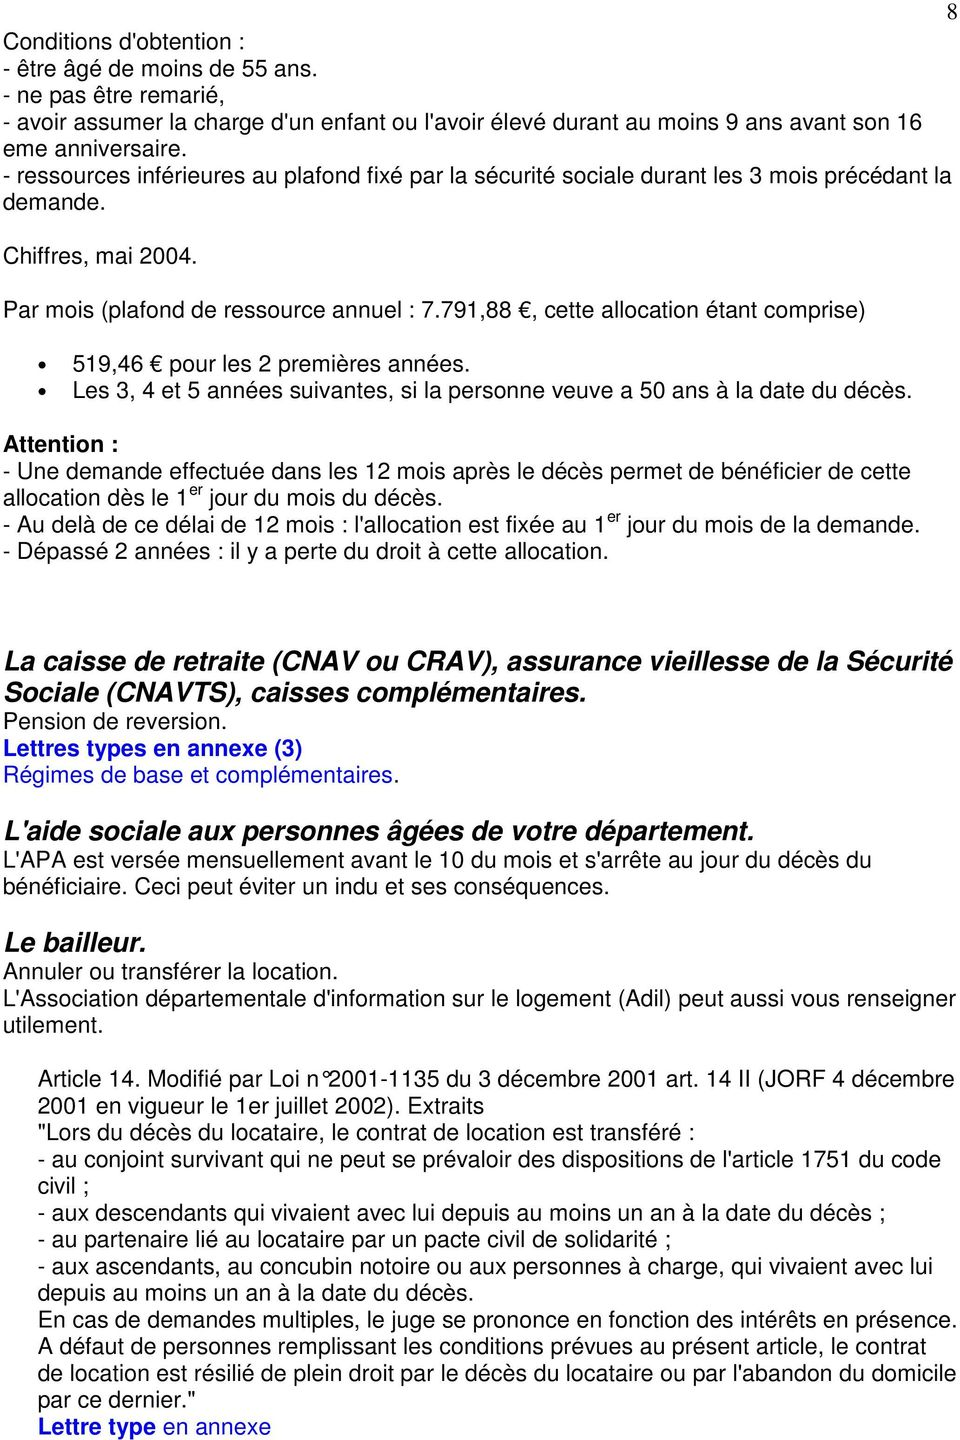 Deces Formalites Administratives Pdf